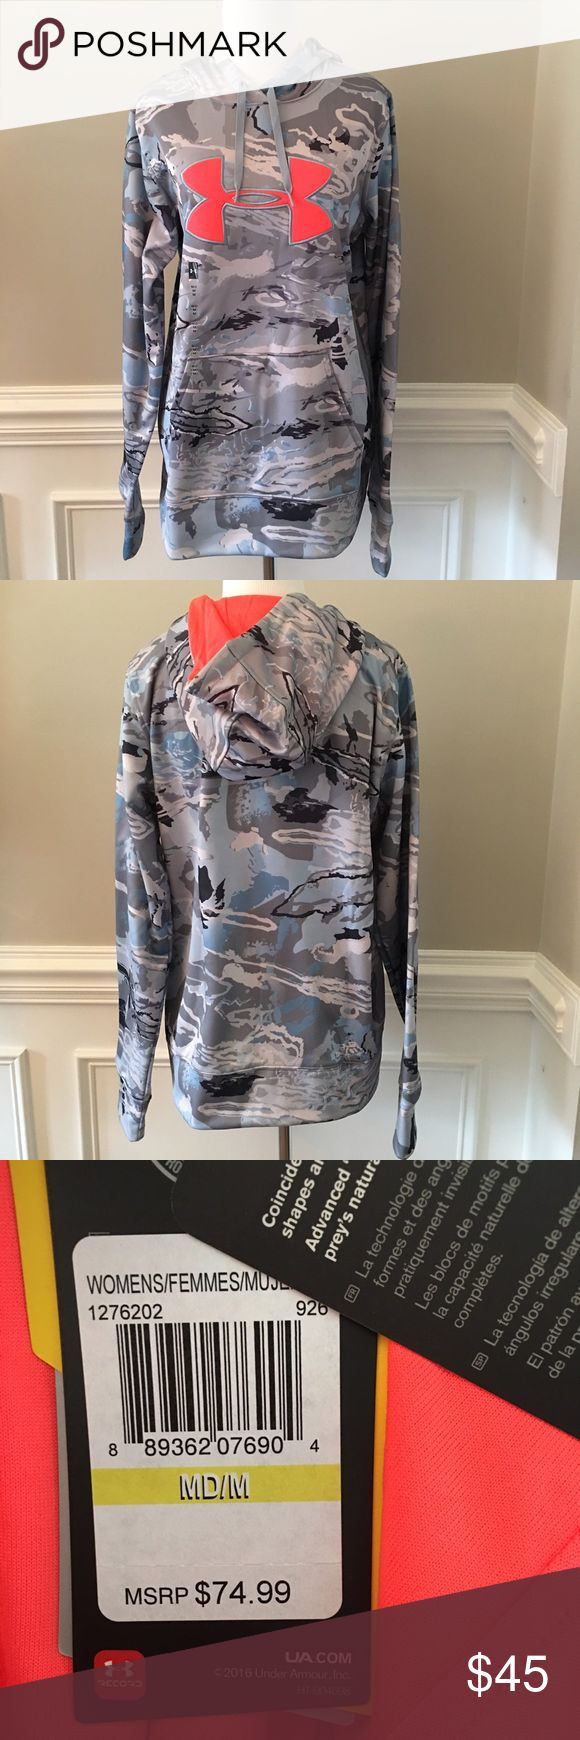 SIZE MEDIUM- Under Armour Women's Camo Hoodie NWT!  Under Armour Hoodie, Size Medium (Women's).  Colors are gray, white, and blue Camo print- with a neon orange interior! Under Armour Tops Sweatshirts & Hoodies